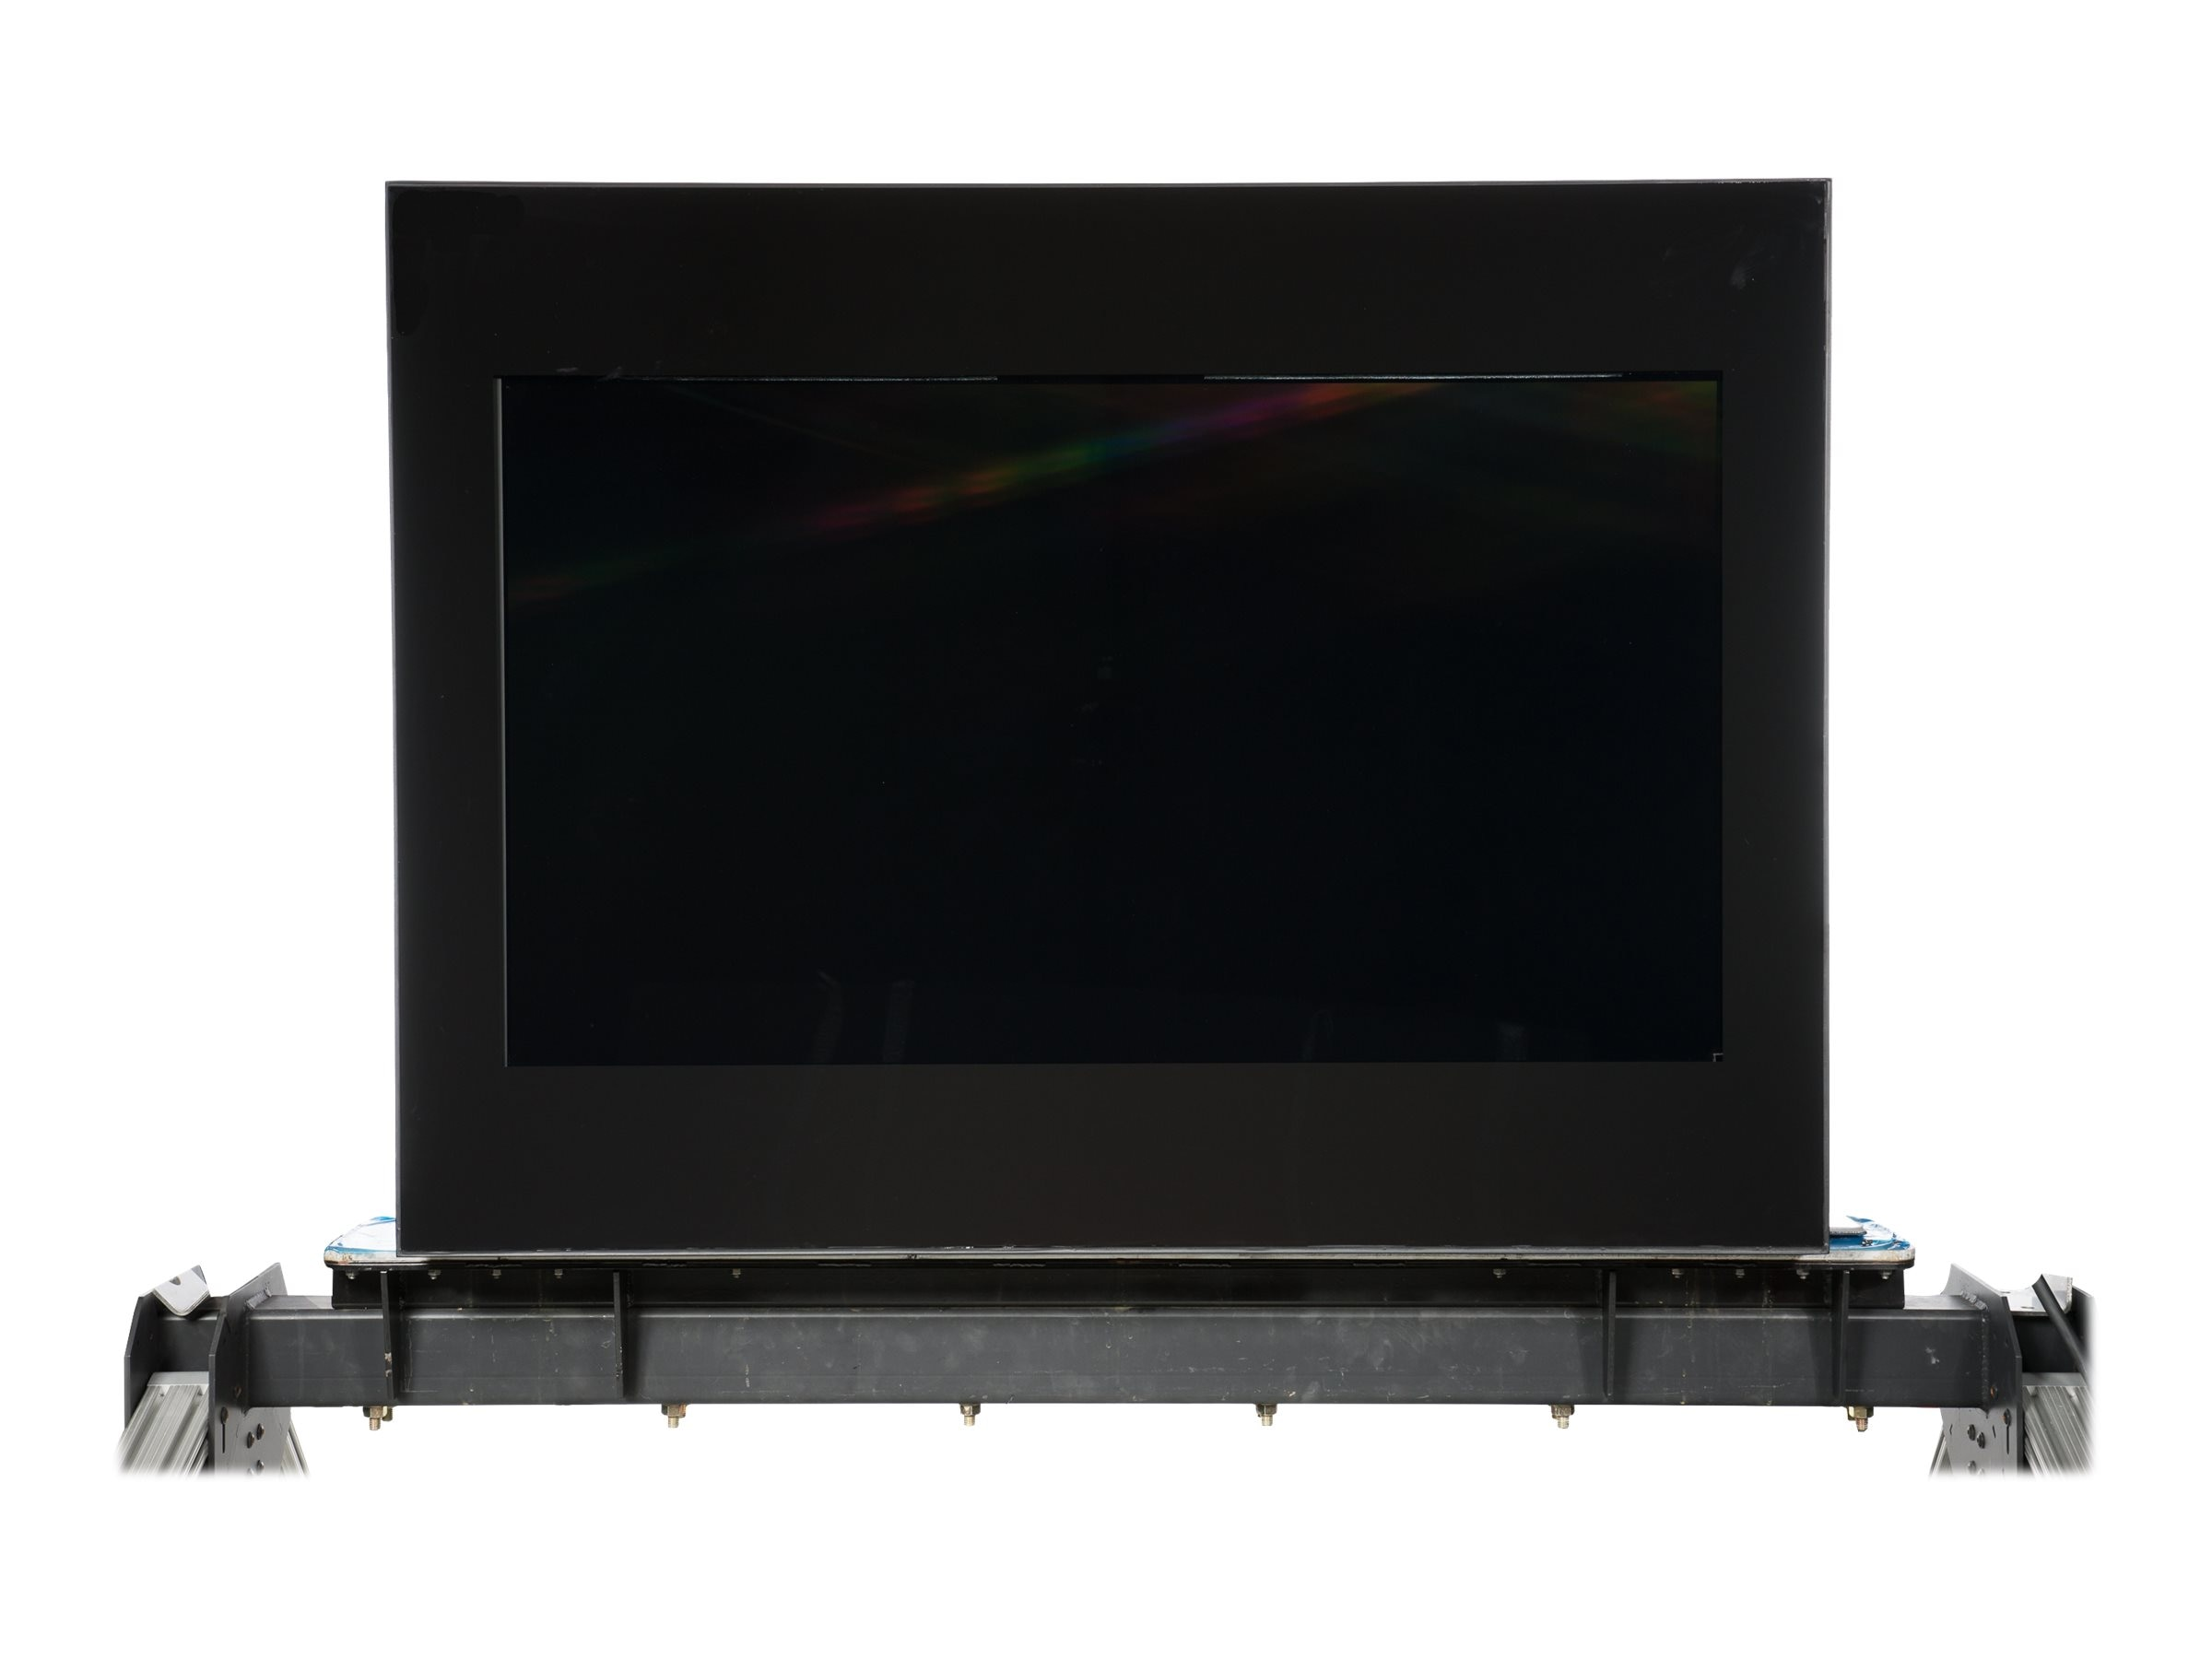 LG 55 UMD BoldVu Single Sided LCD Display, Landscape, BV55LSUAS0.AUS, 18008203, Monitors - Large-Format LCD